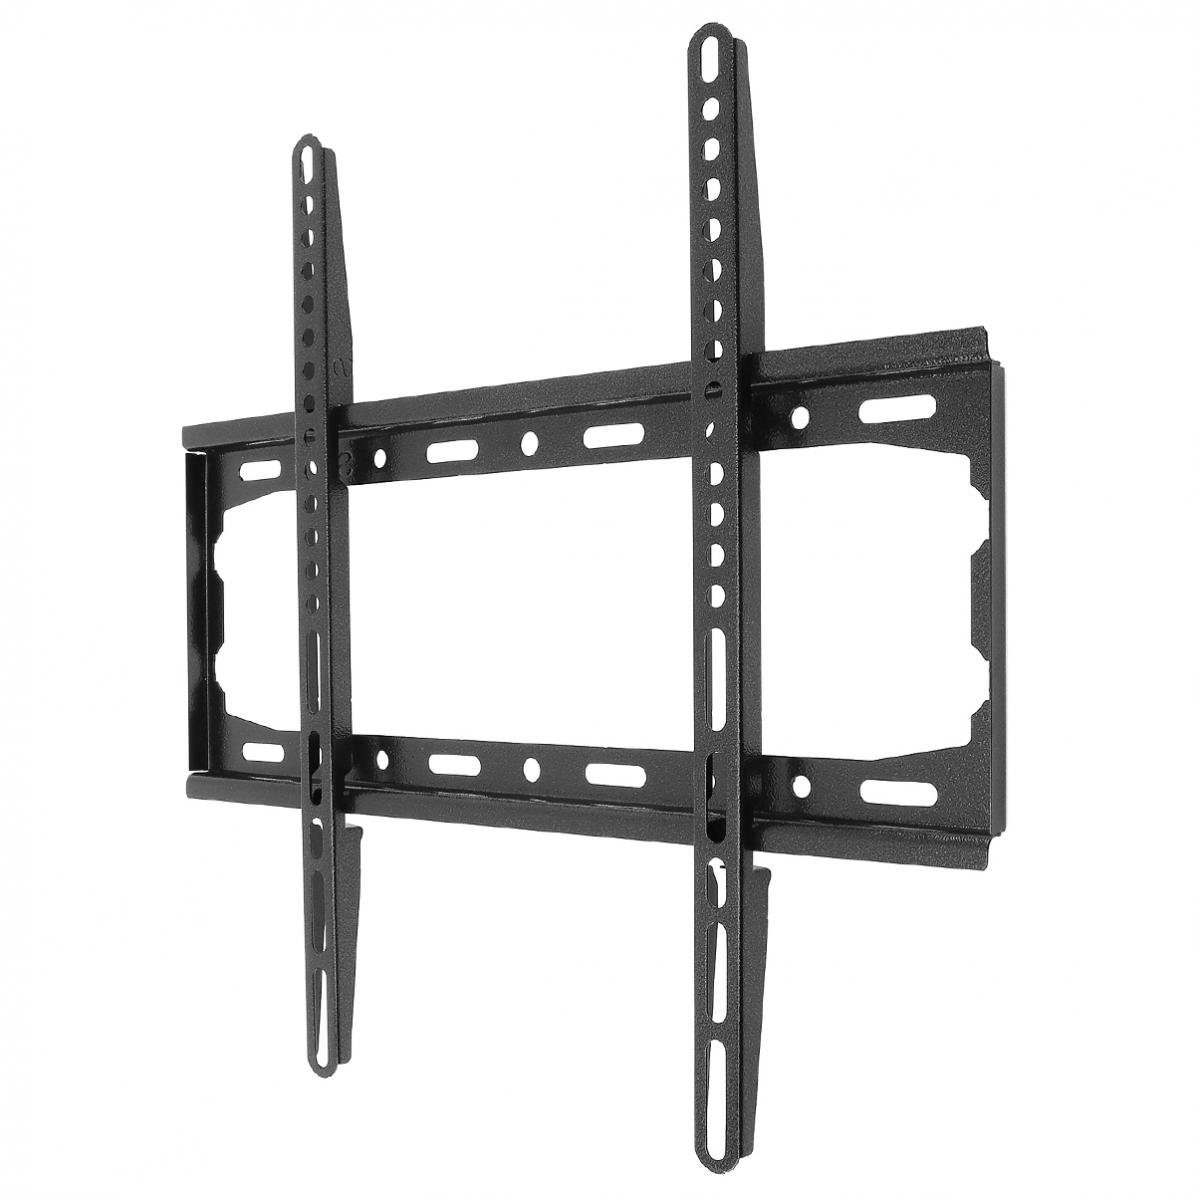 Image 5 - Universal convenient 45KG TV Wall Mount Bracket Fixed Flat Panel TV Frame for 26 55 Inch LCD LED Monitor Flat PanelTV Mount   - AliExpress